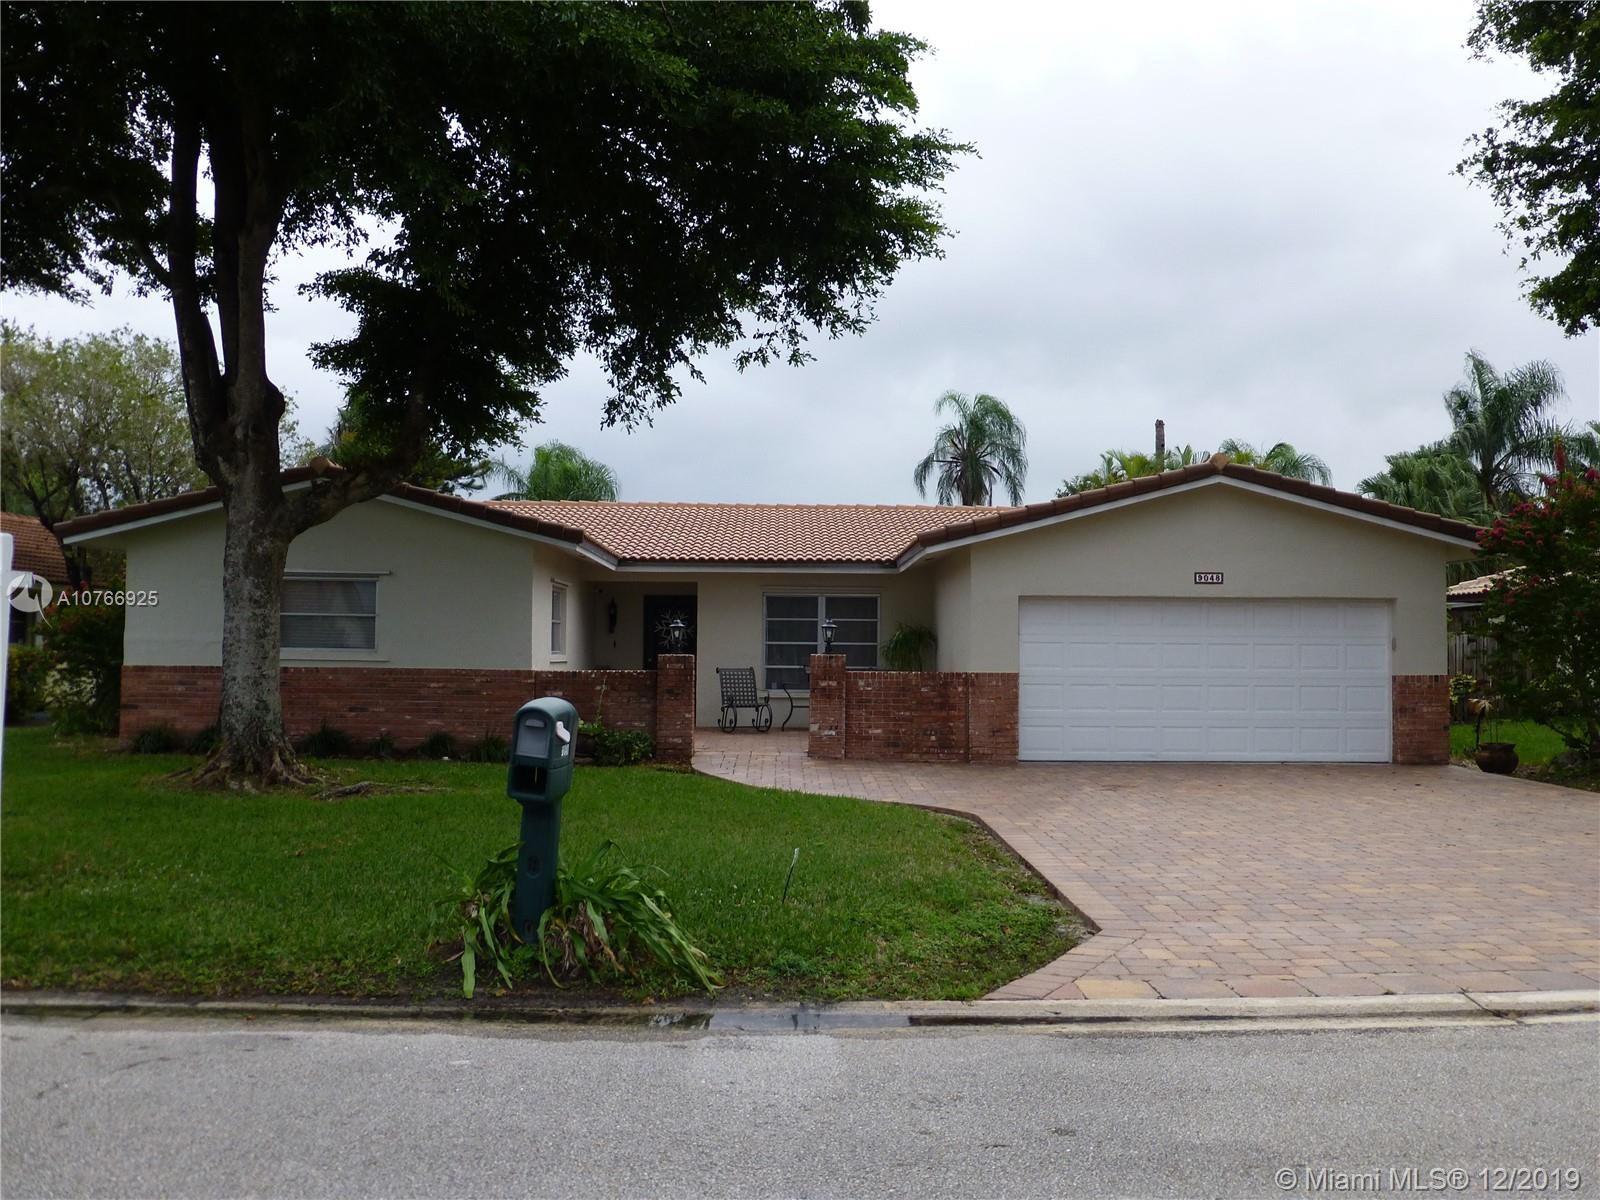 Beautiful 4 bedroom, 2 bathroom home in the heart of Coral Springs! This single family home has a  fully remodeled kitchen, with gorgeous antique white cabinets, granite countertops, and Edison lighting. Both bathrooms are also tastefully remodeled. Wide driveway with beautiful pavers that lead up to the front door. All interior walls have been repainted in calming neutral colors. This home also features a screened in pool with travertine decking prefect for entertaining! Bonus-there is no HOA! Close to restaurants, shopping, hospitals, and expressways.